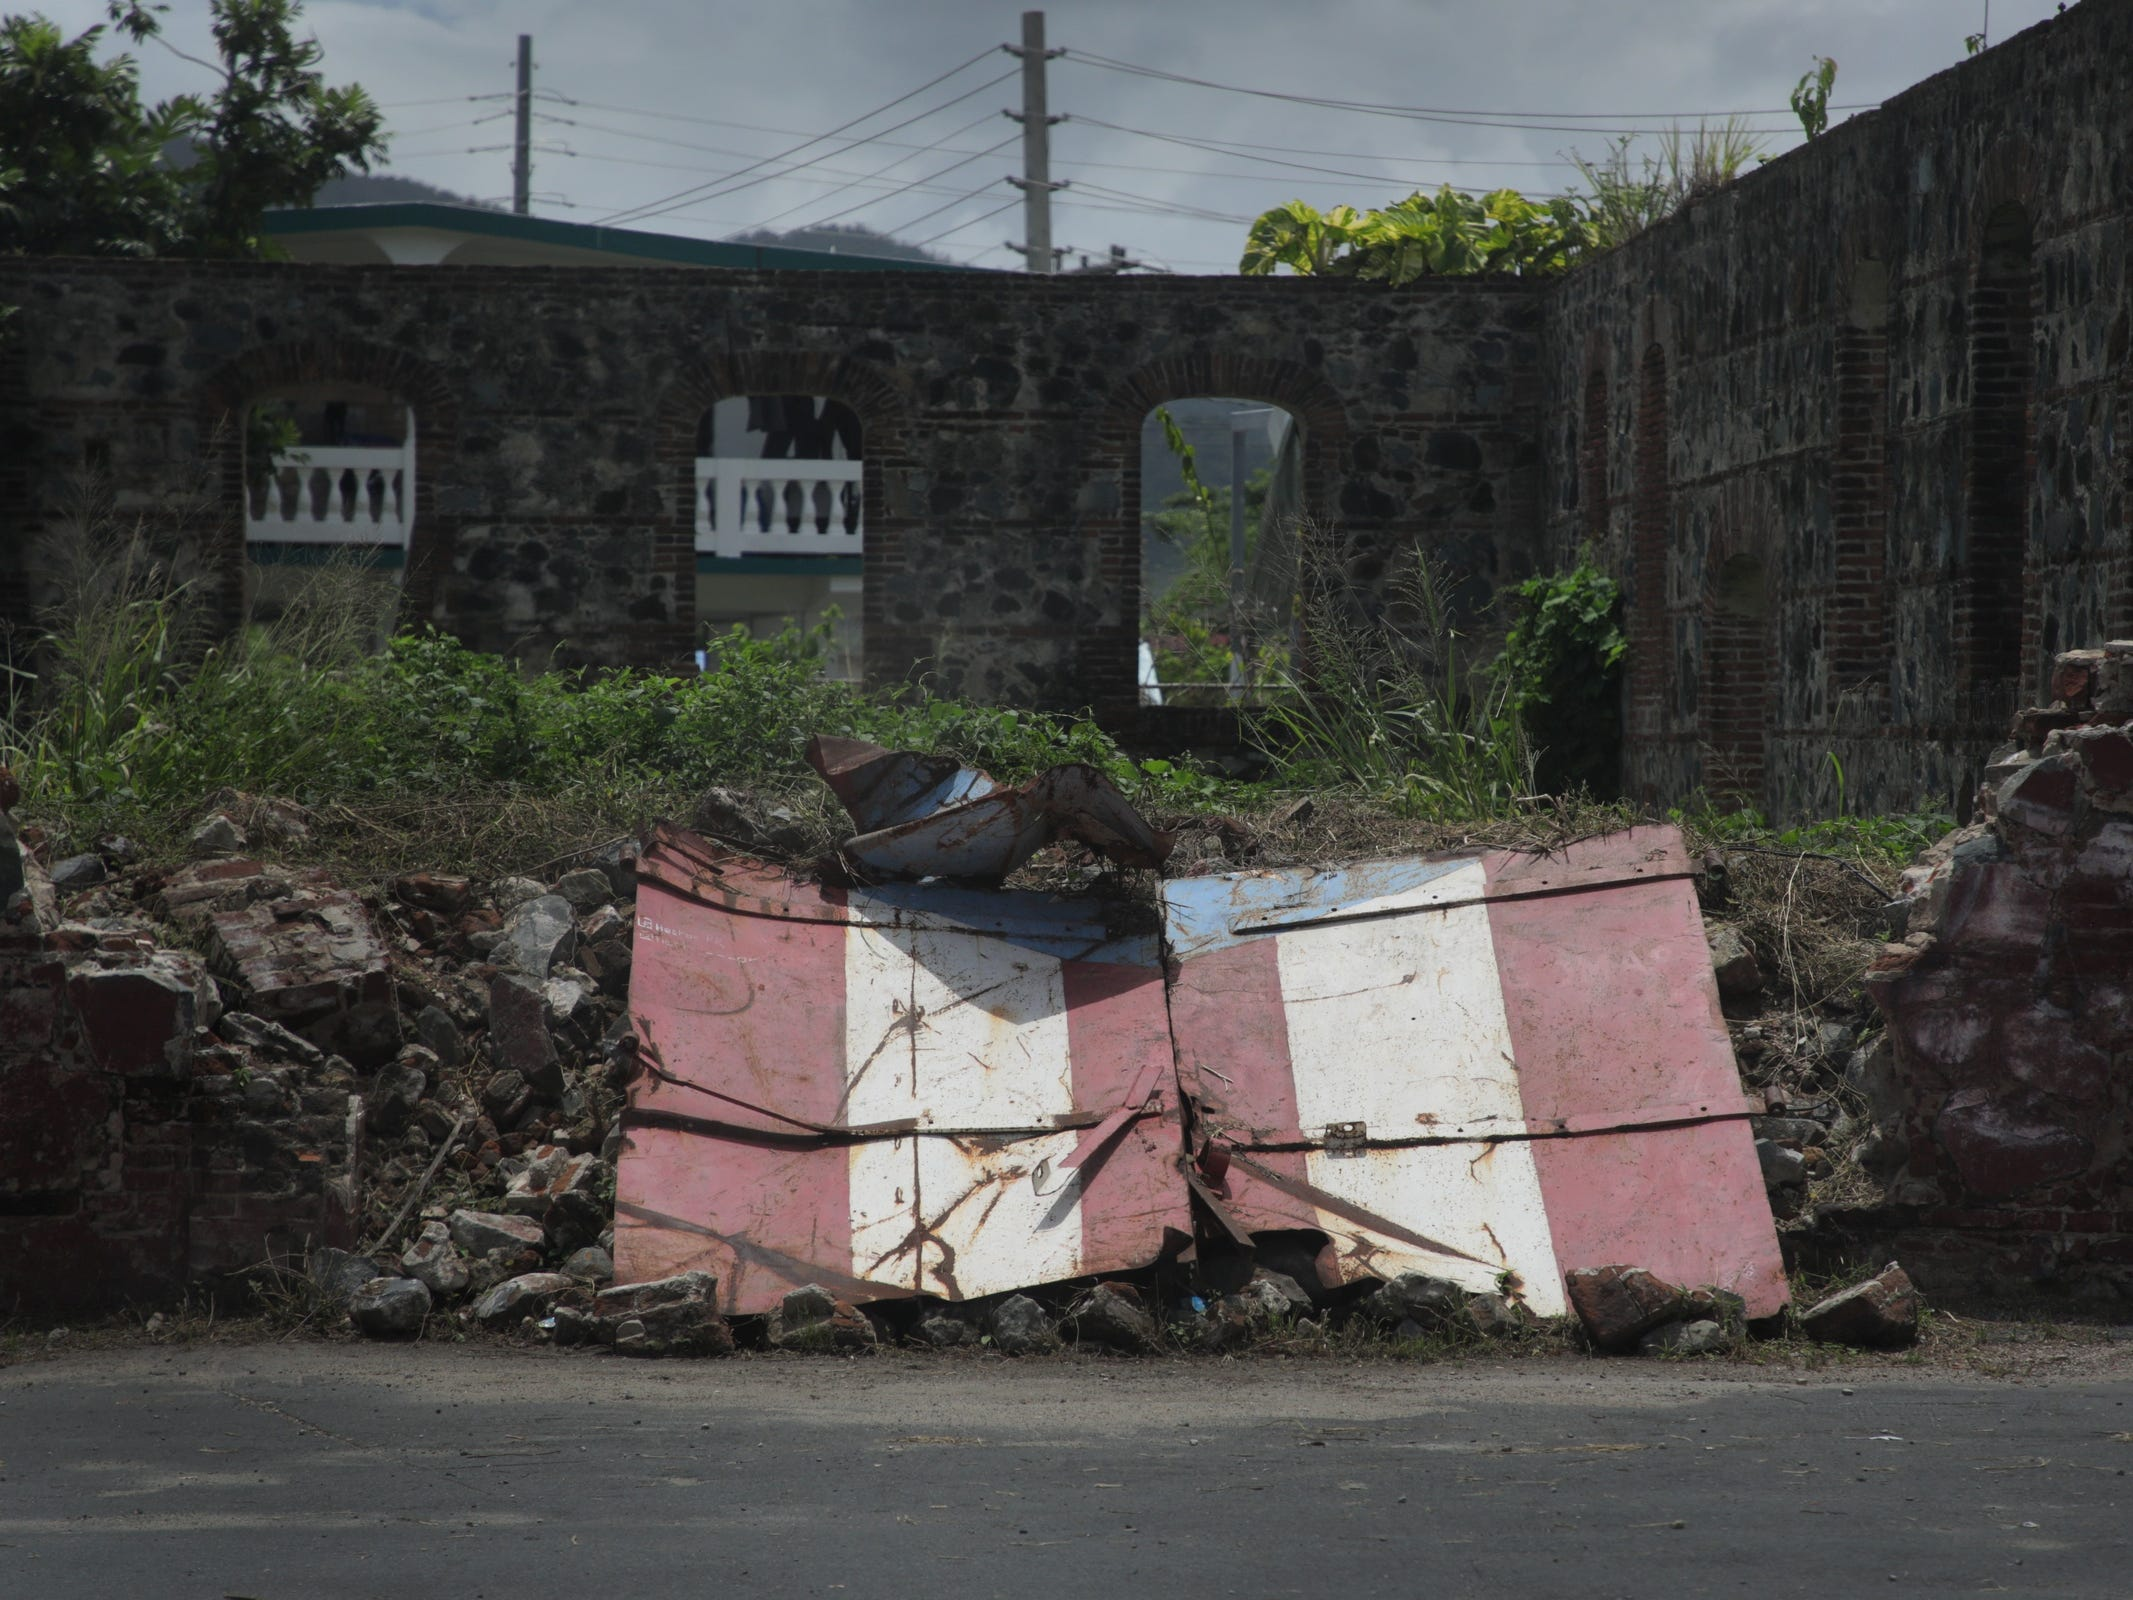 A gate with the Puerto Rican flag lays crushed by a collapsed wall on the side of the road in Yabucao, Puerto Rico.